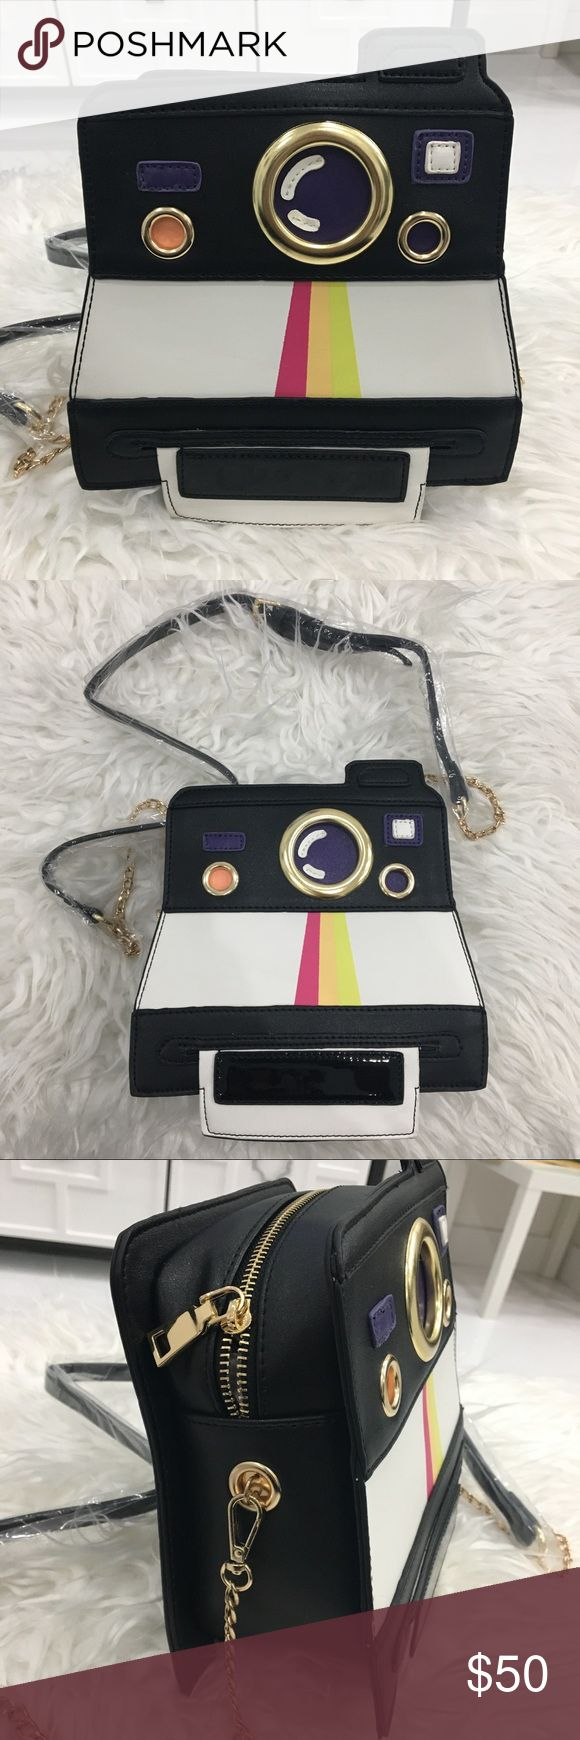 Polaroid camera cross body bag Cross body bag in the shape of a Polaroid camera. Bag has gold zippers, chain and accents. Very cool and unique and great quality!! Water bottle is there for size. Bags Crossbody Bags